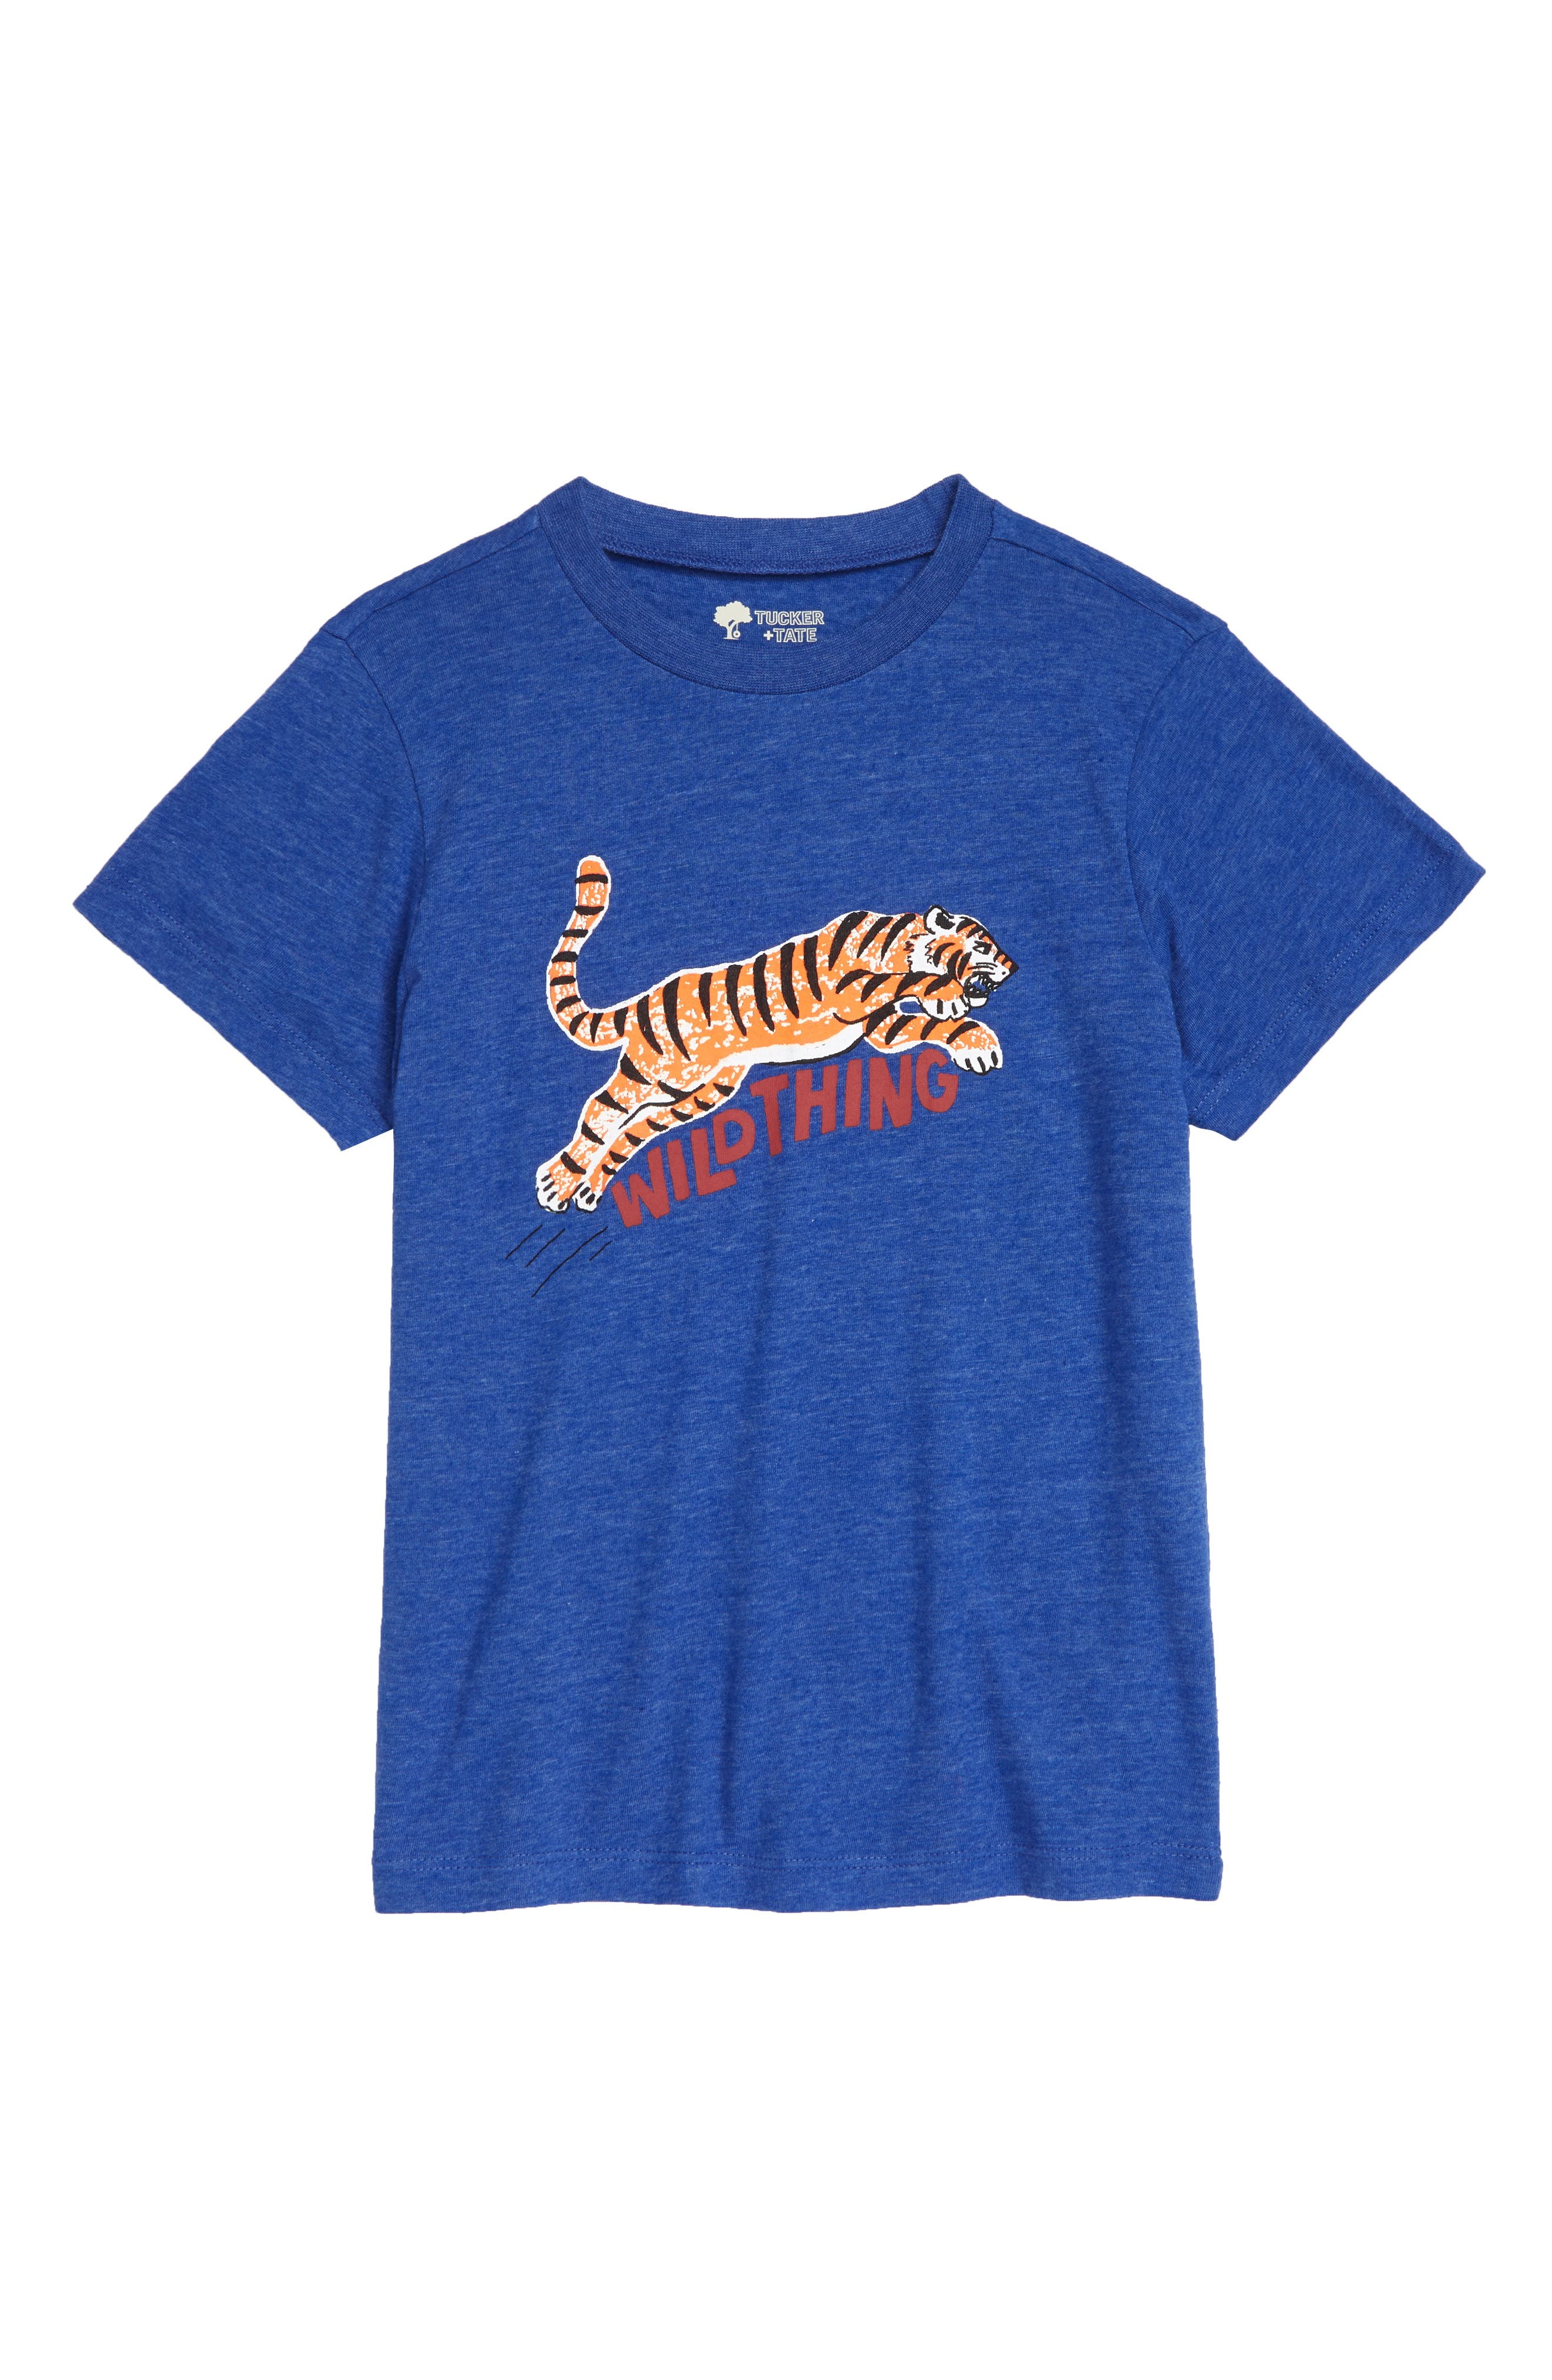 Your wild guy will love this graphic tee cut from slubby cotton-blend jersey that\\\'s soft and cozy. Style Name: Tucker + Tate Kids\\\' Graphic Tee (Toddler, Little Boy & Big Boy). Style Number: 5935943 2. Available in stores.